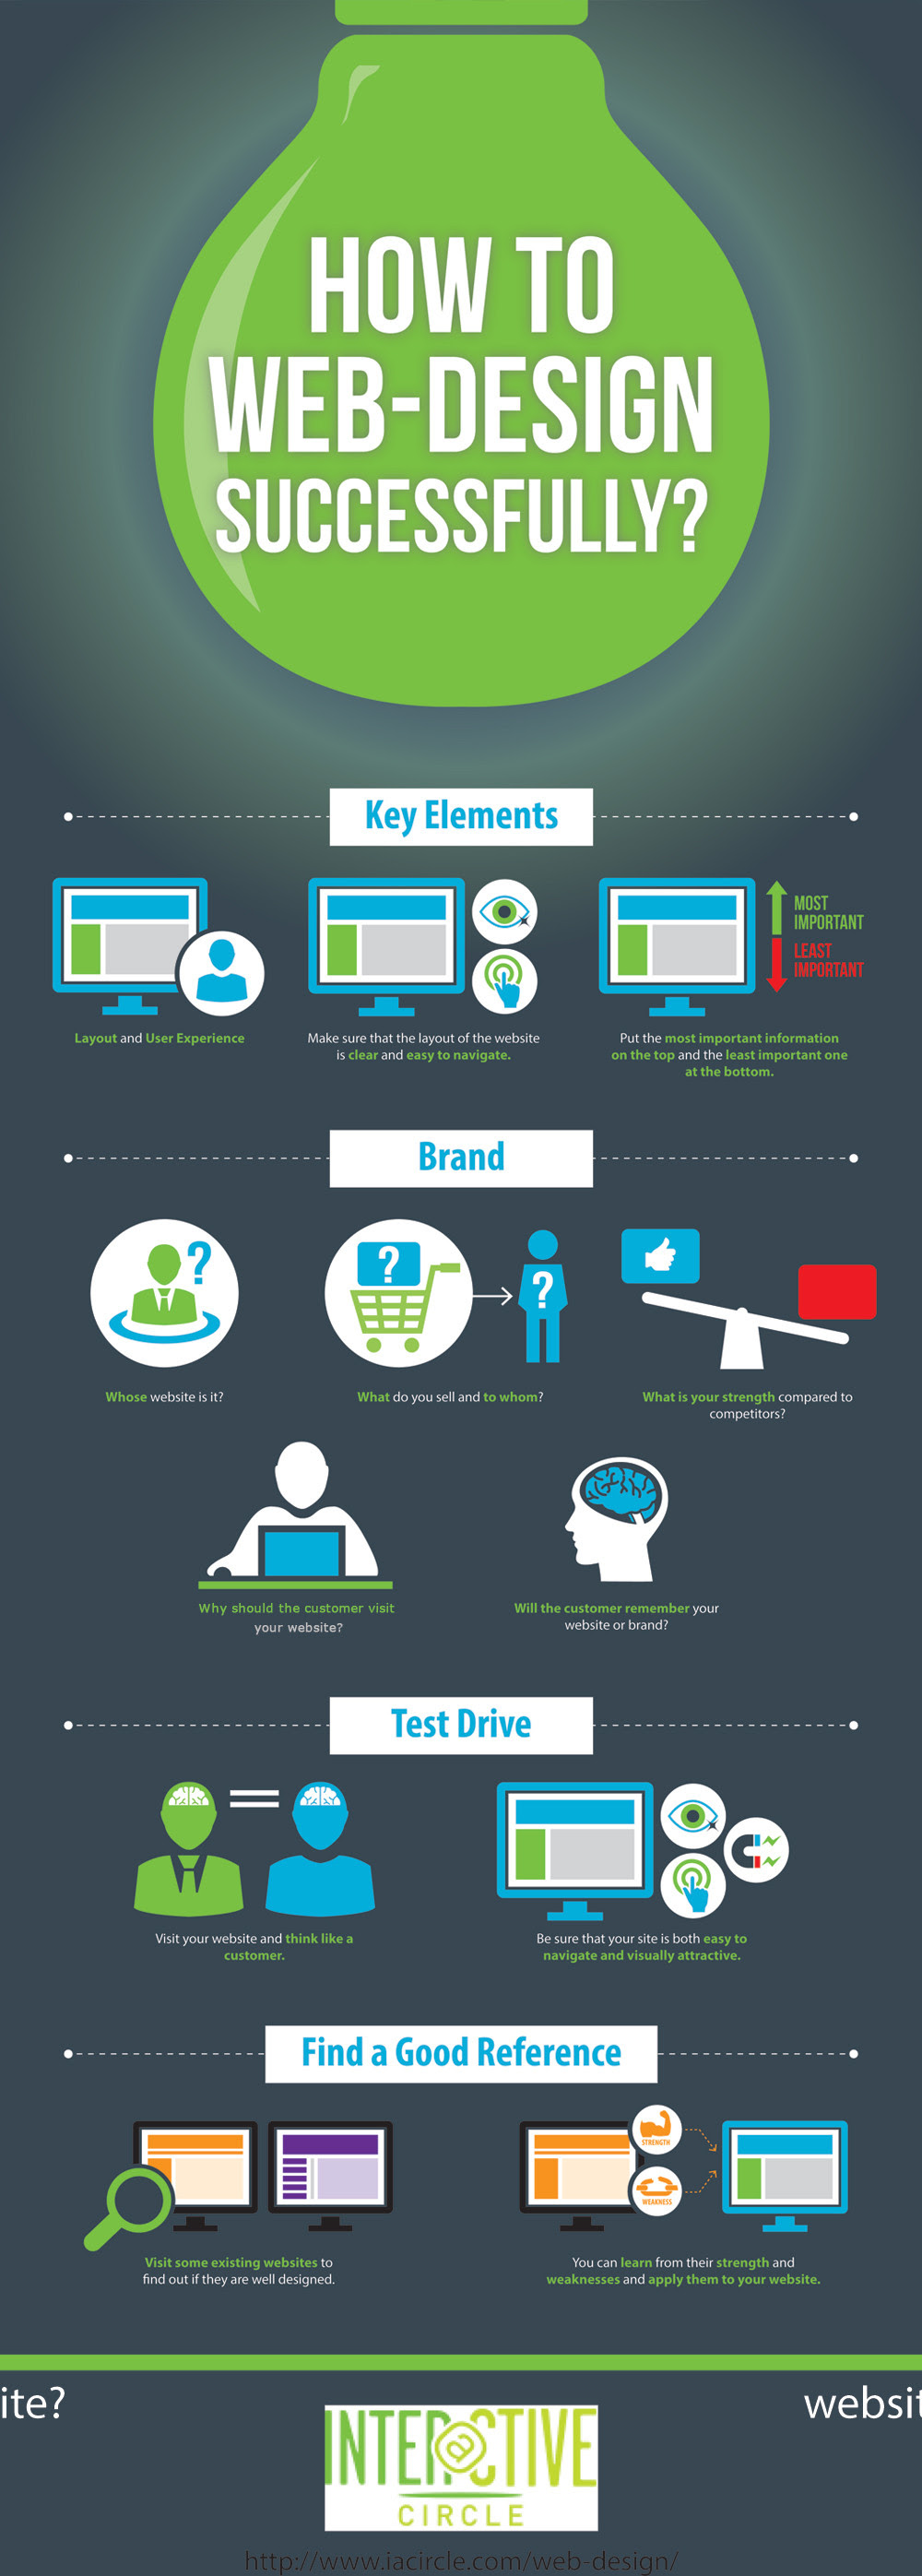 Infographic: How to Web-Design Successfully?